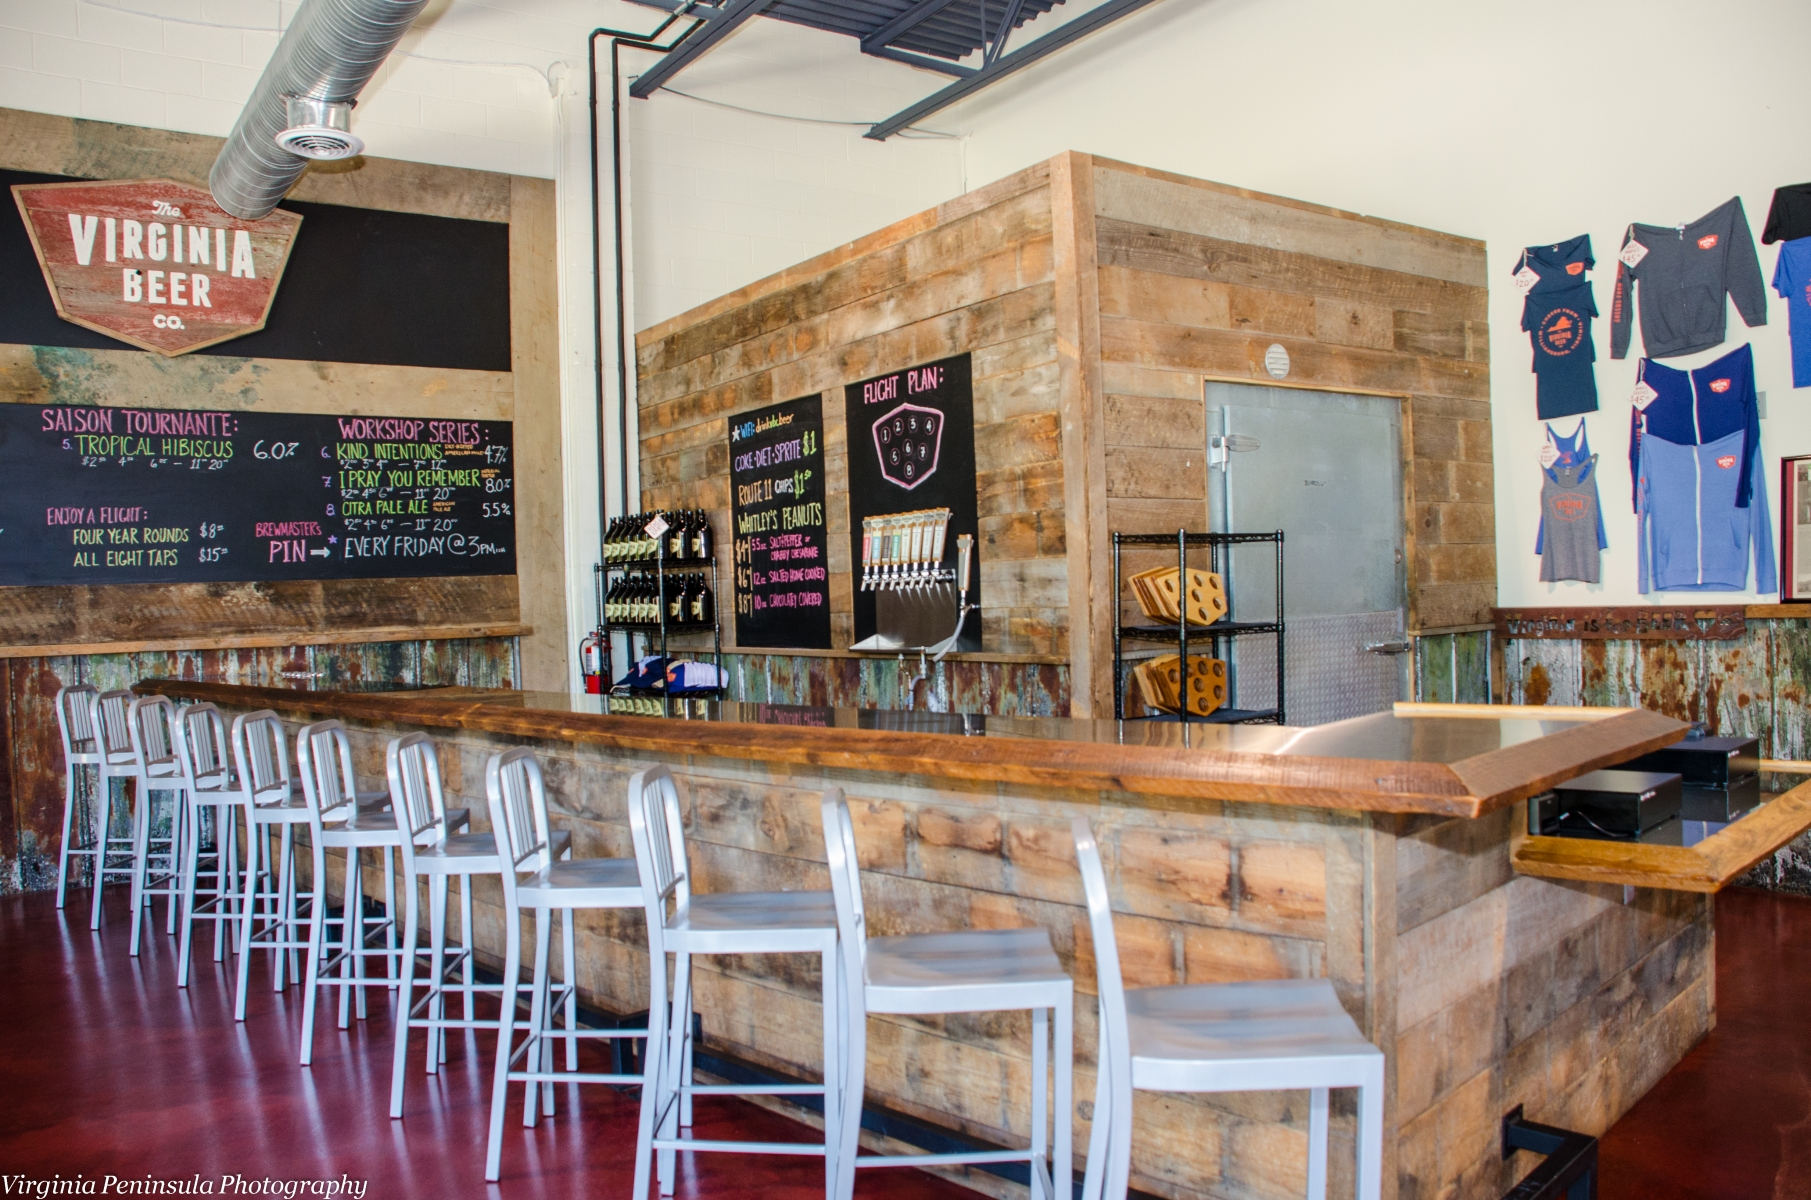 The Virginia Beer Co., Williamsburg, VA | The Beer Mapping Project